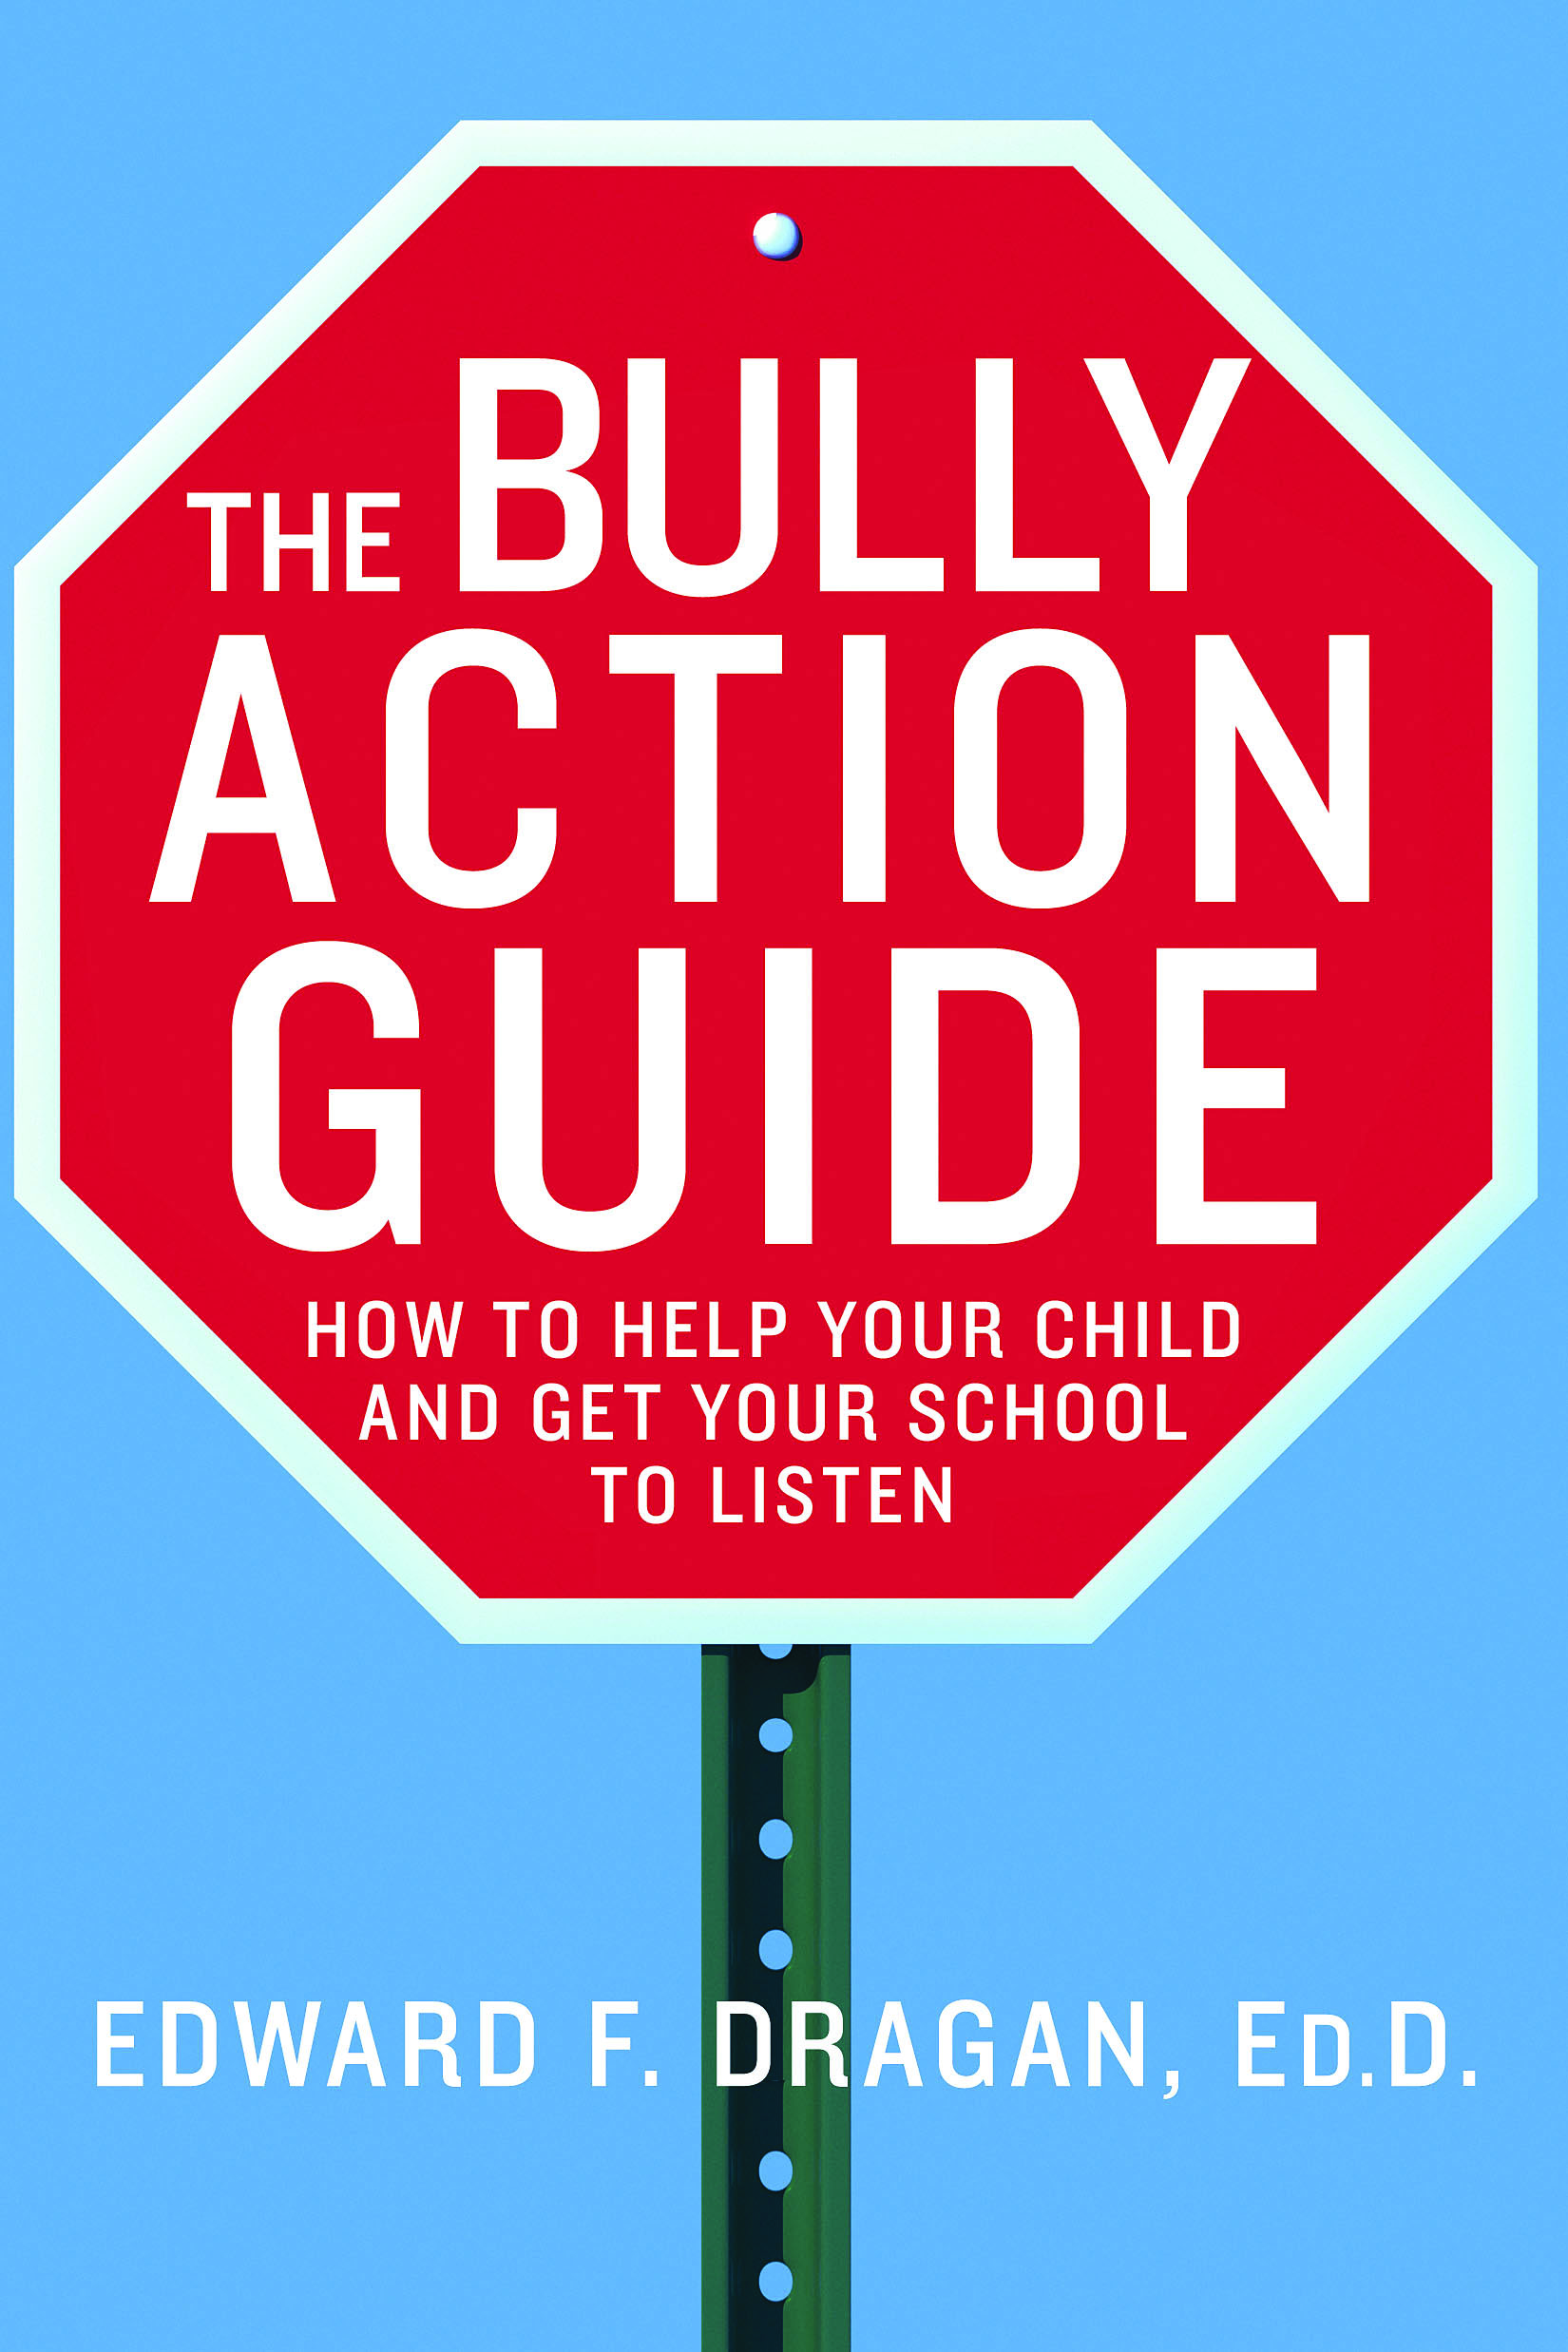 bully action guide cover